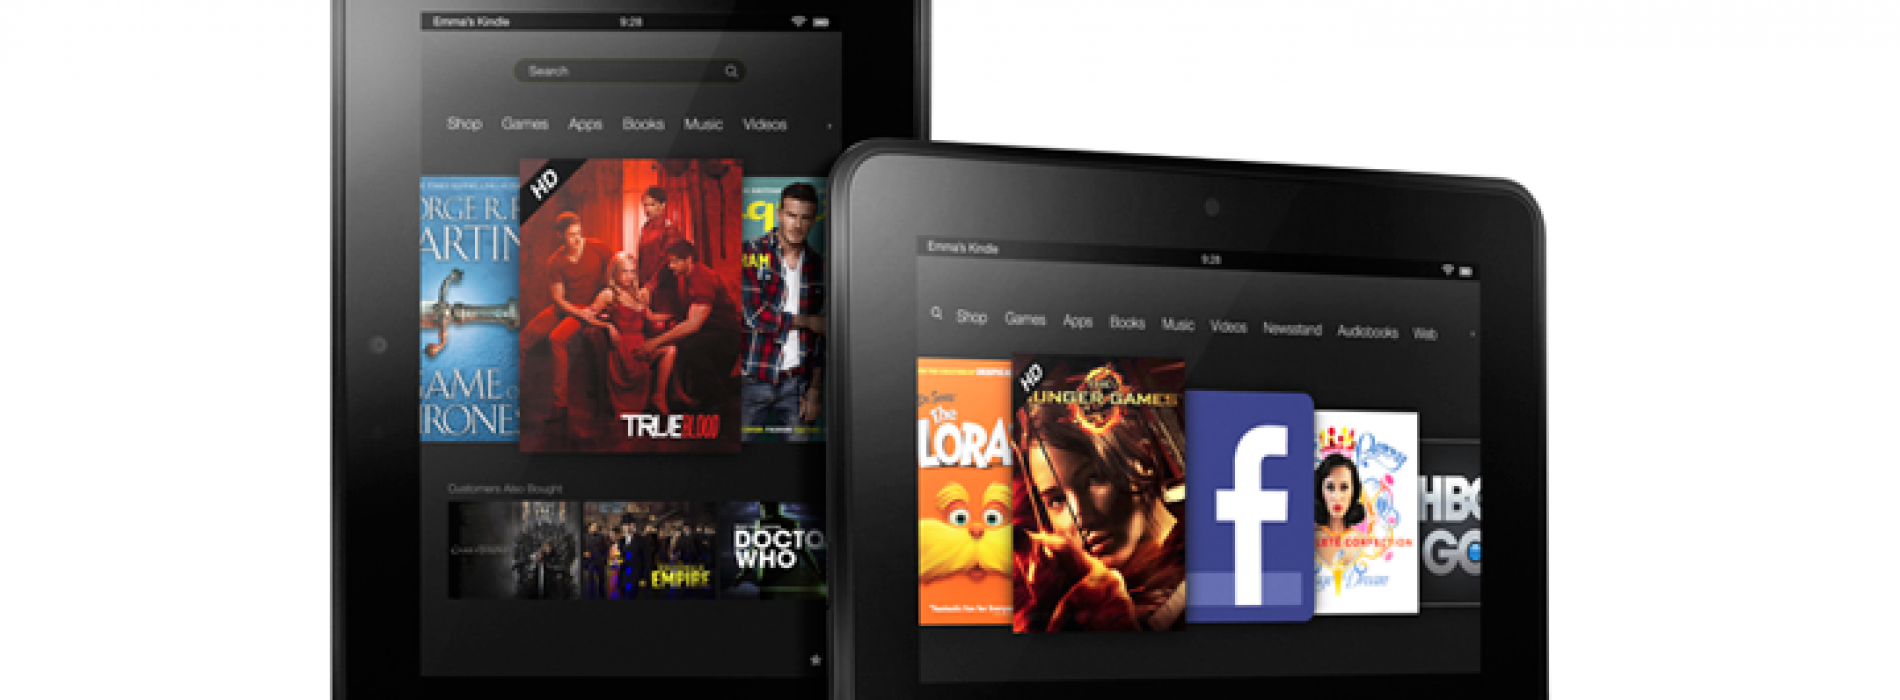 Amazon announces Kindle Fire HD family